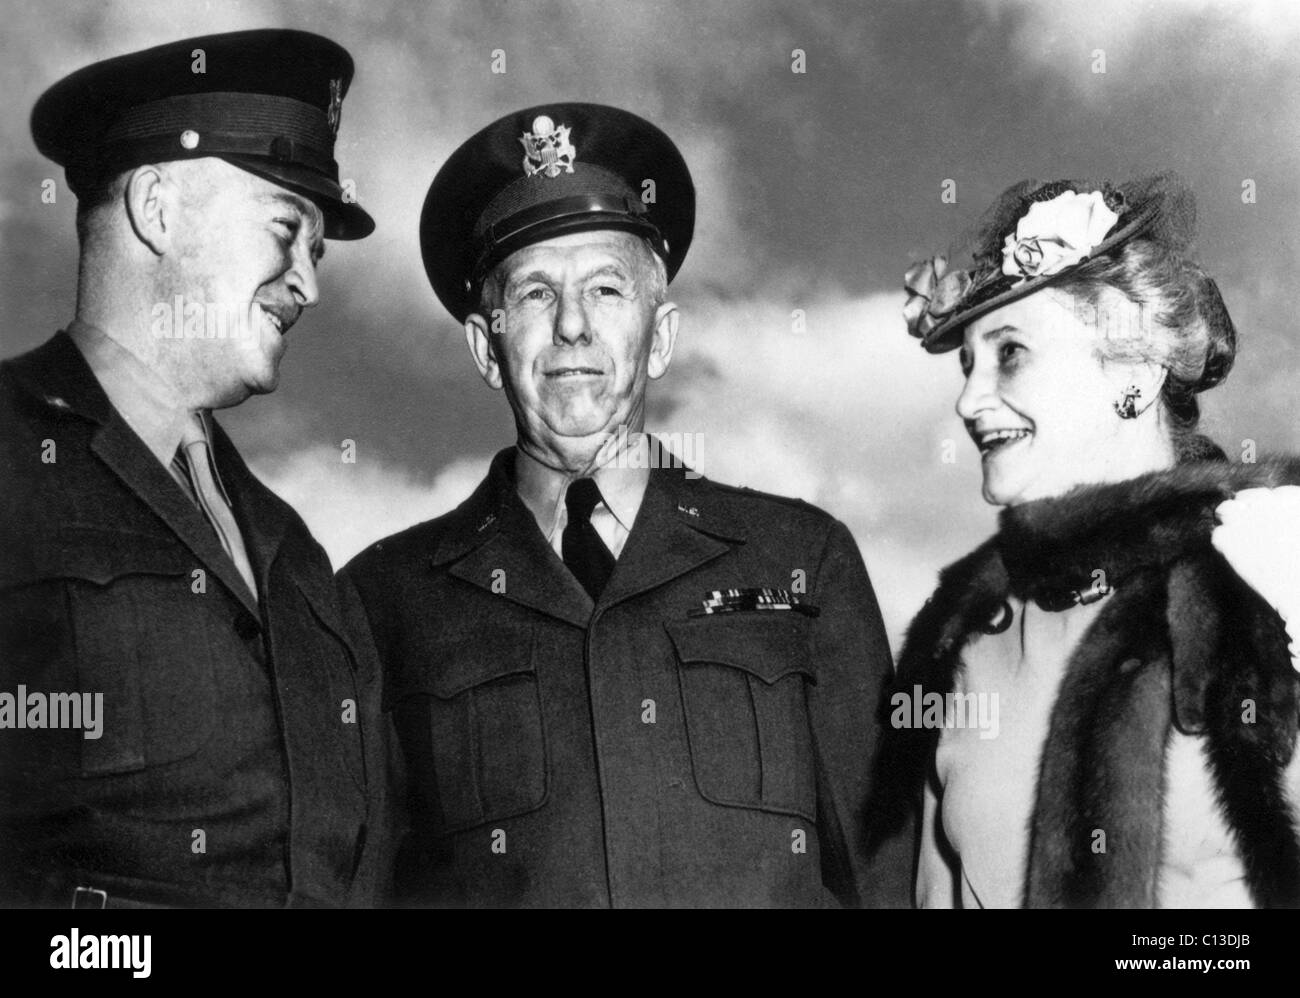 General George C Marshall Quotes - The american parade from left general dwight eisenhower general george marshall and